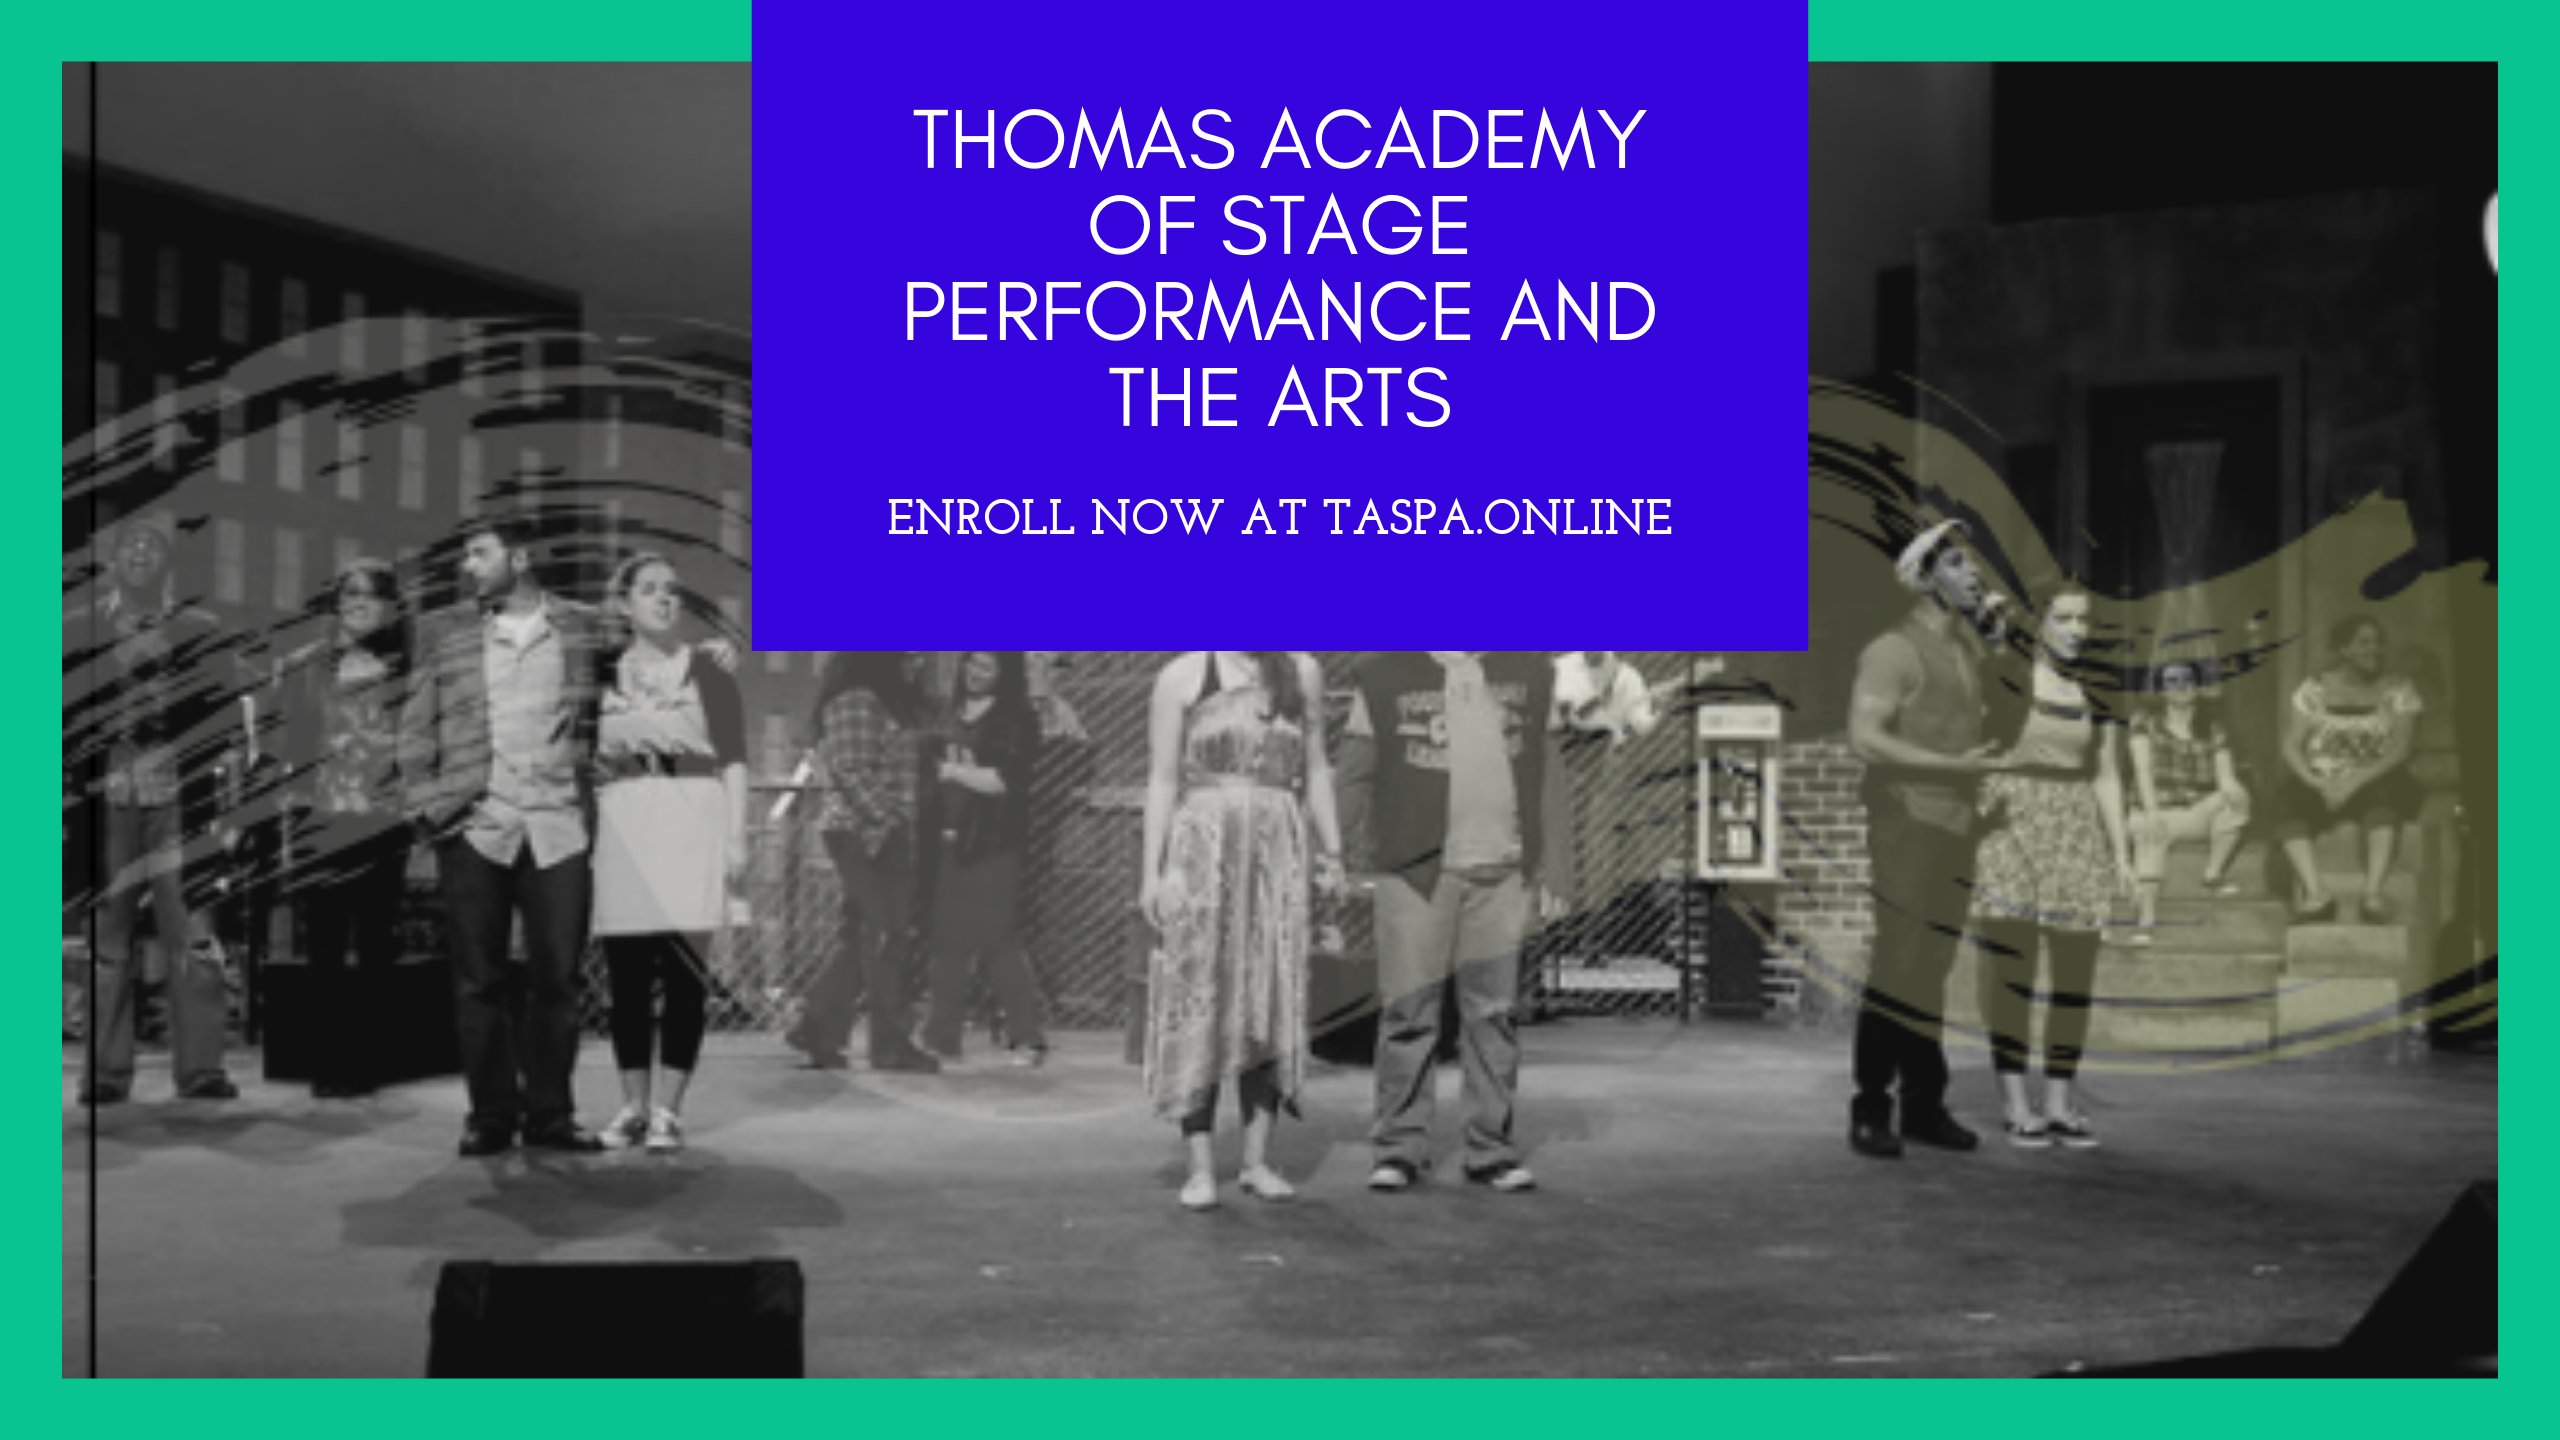 Thomas Academy of Stage Performance and the Arts